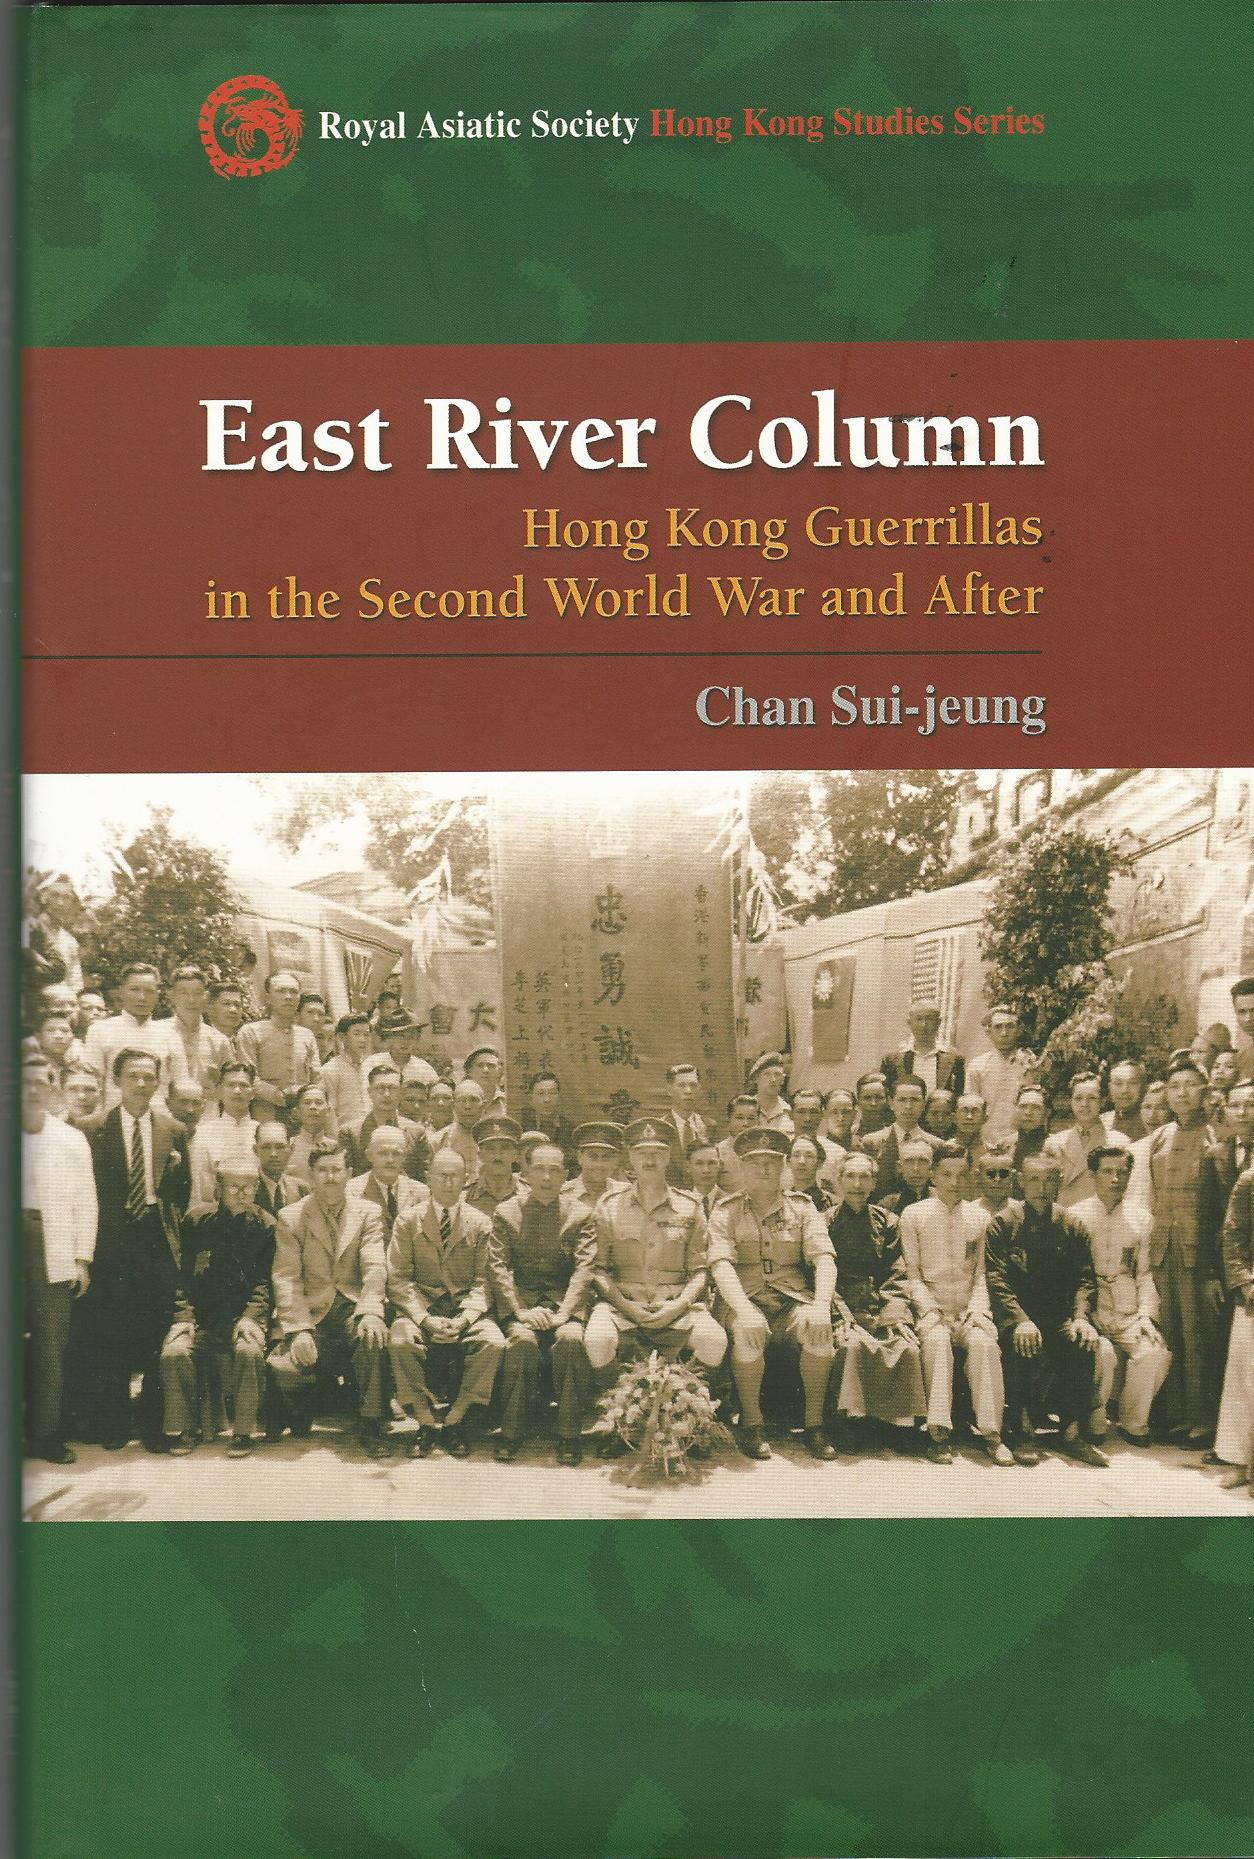 Image for East River Column: Hong Kong Guerrillas in the Second World War and After (Royal Asiatic Society Hong Kong Studies Series)